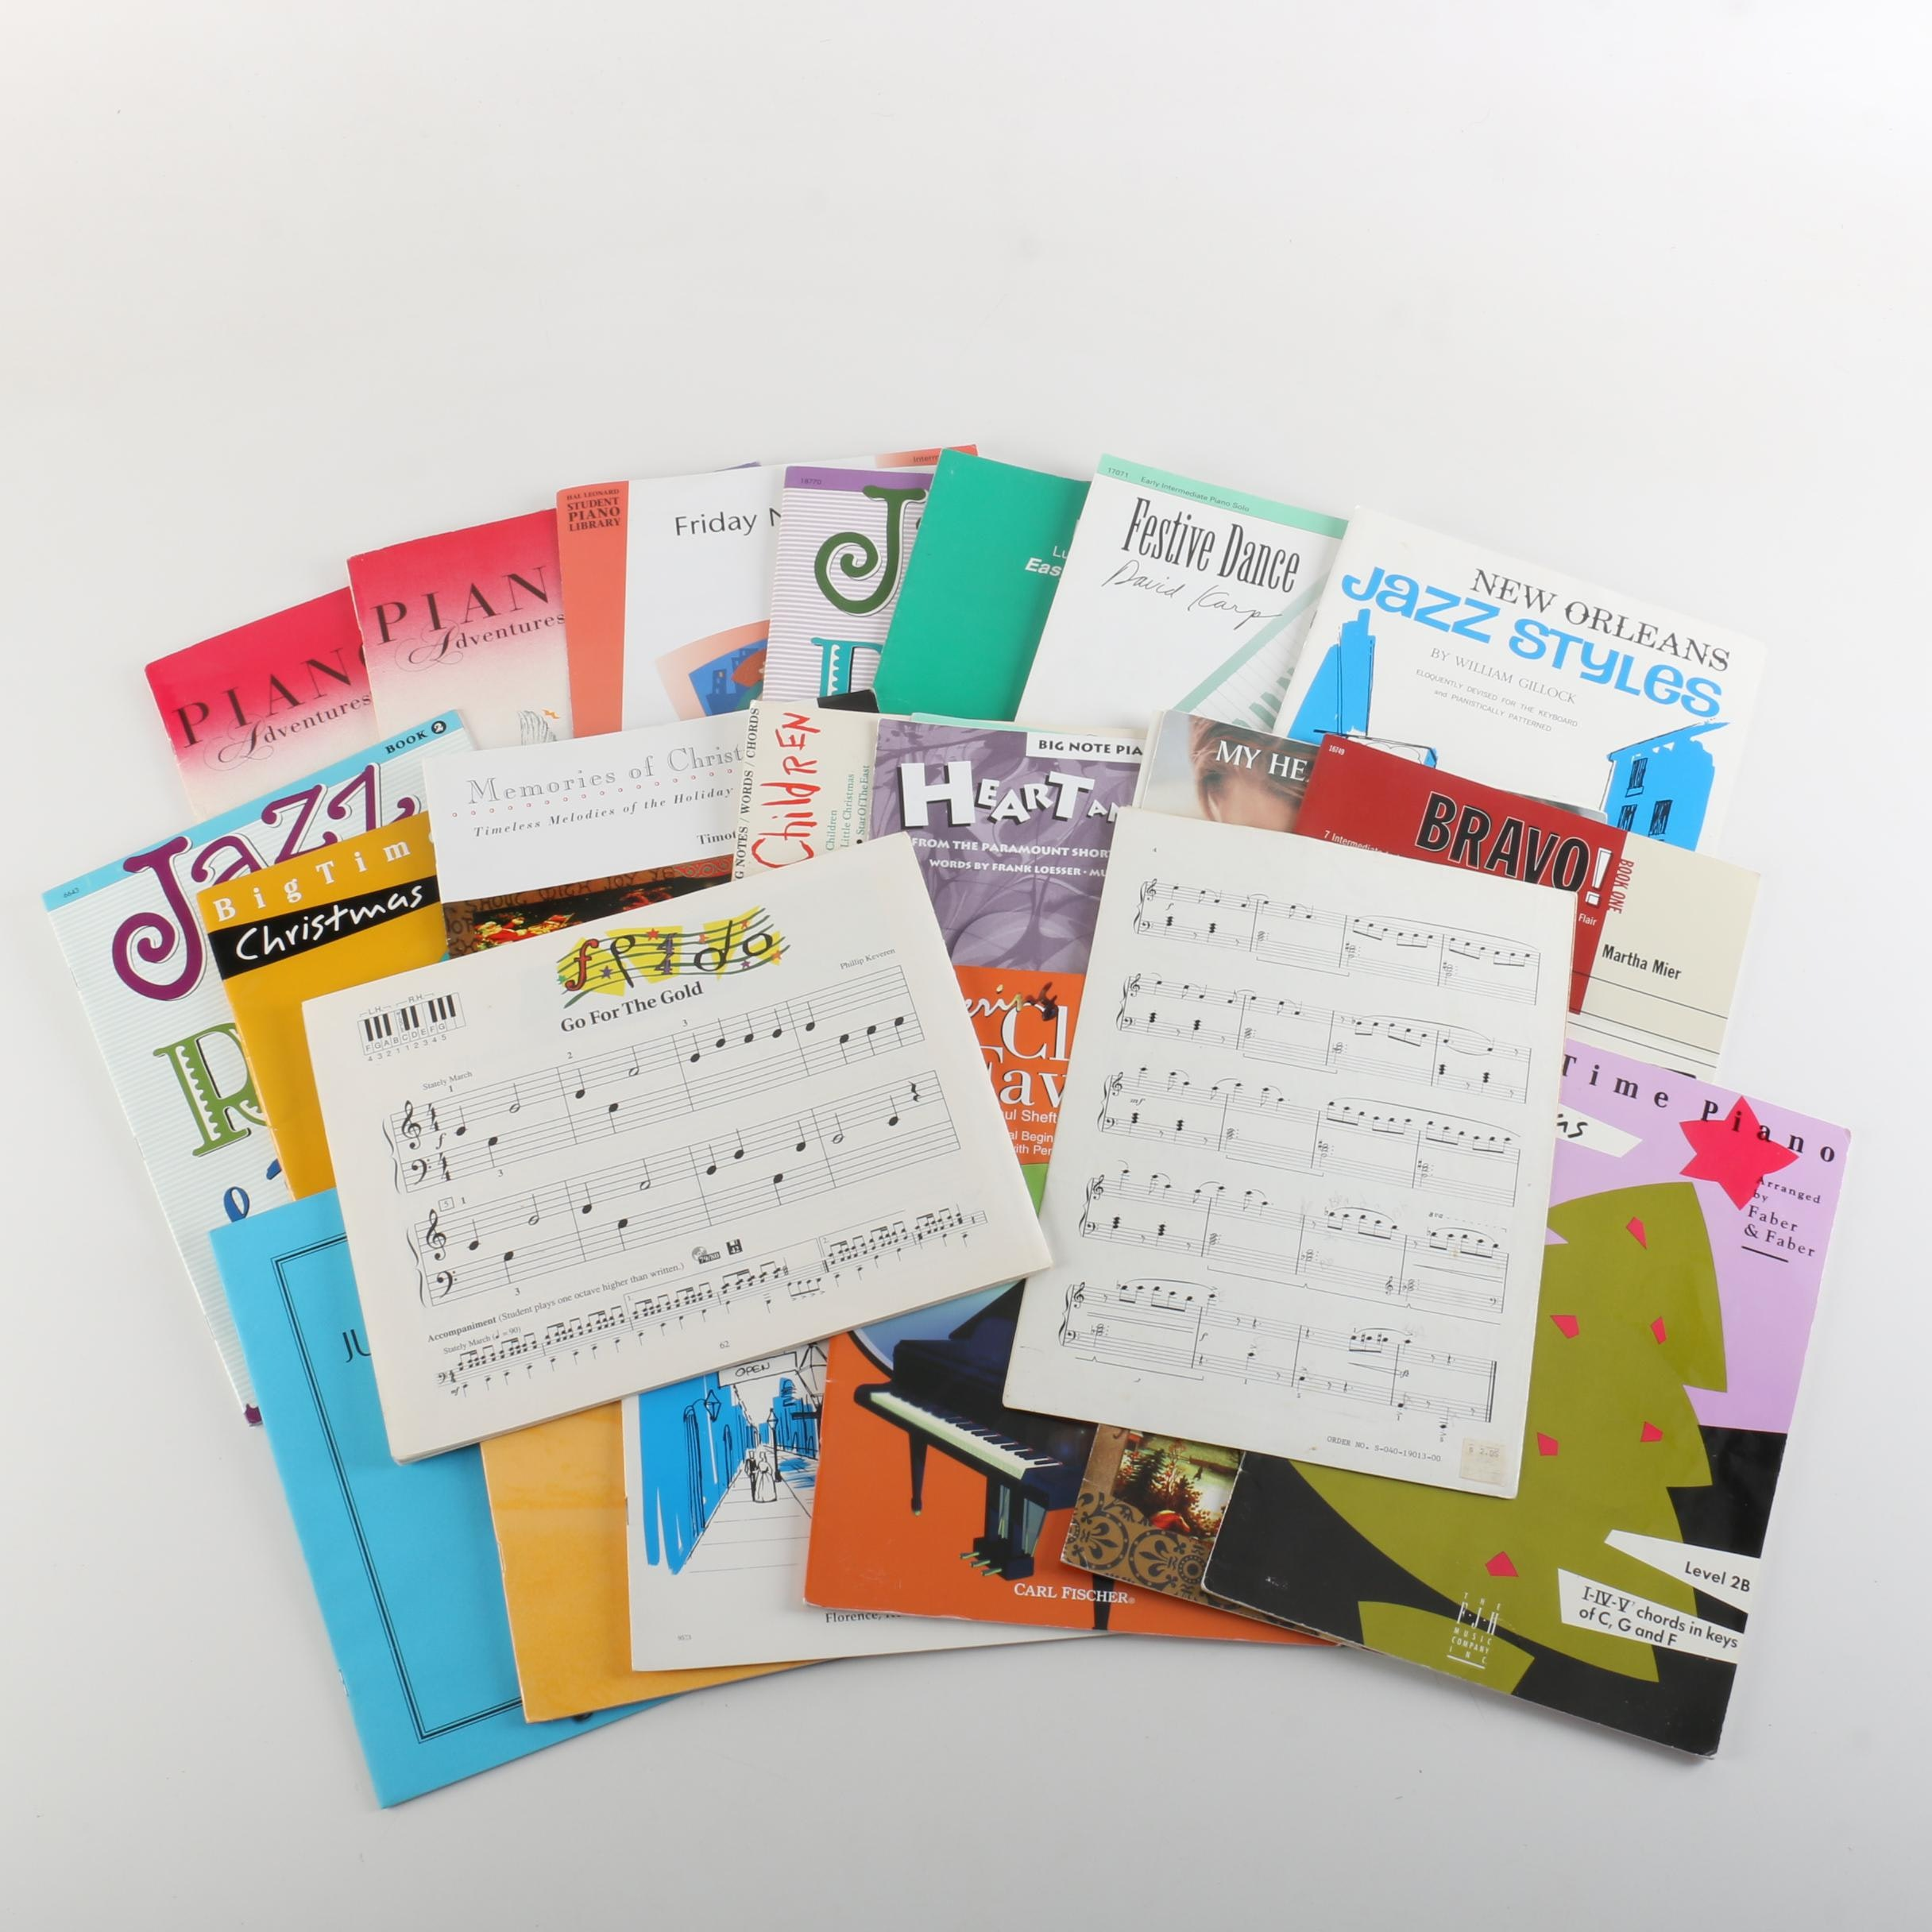 Piano Sheet Music and Theory Books